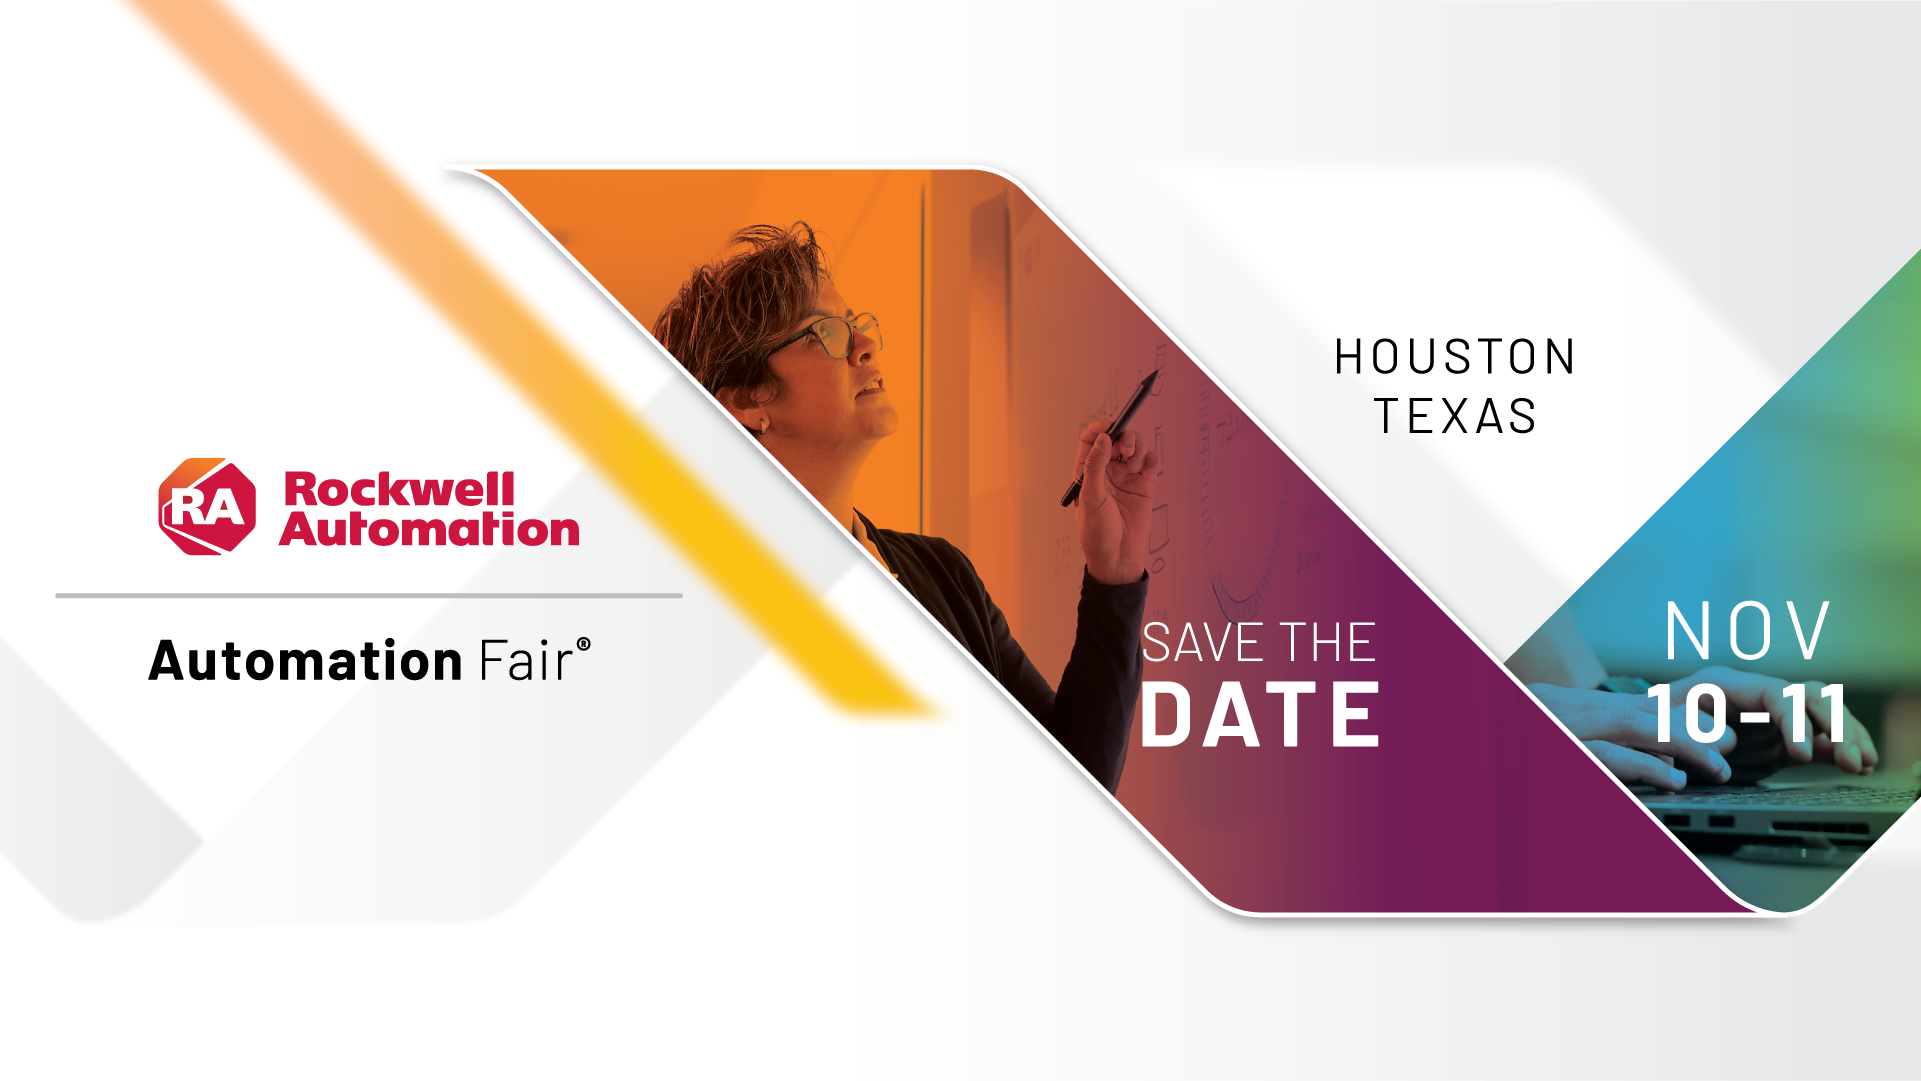 Save the date for the 2021 Automation Fair® event happening November 10-11, 2021 in Houston, Texas.